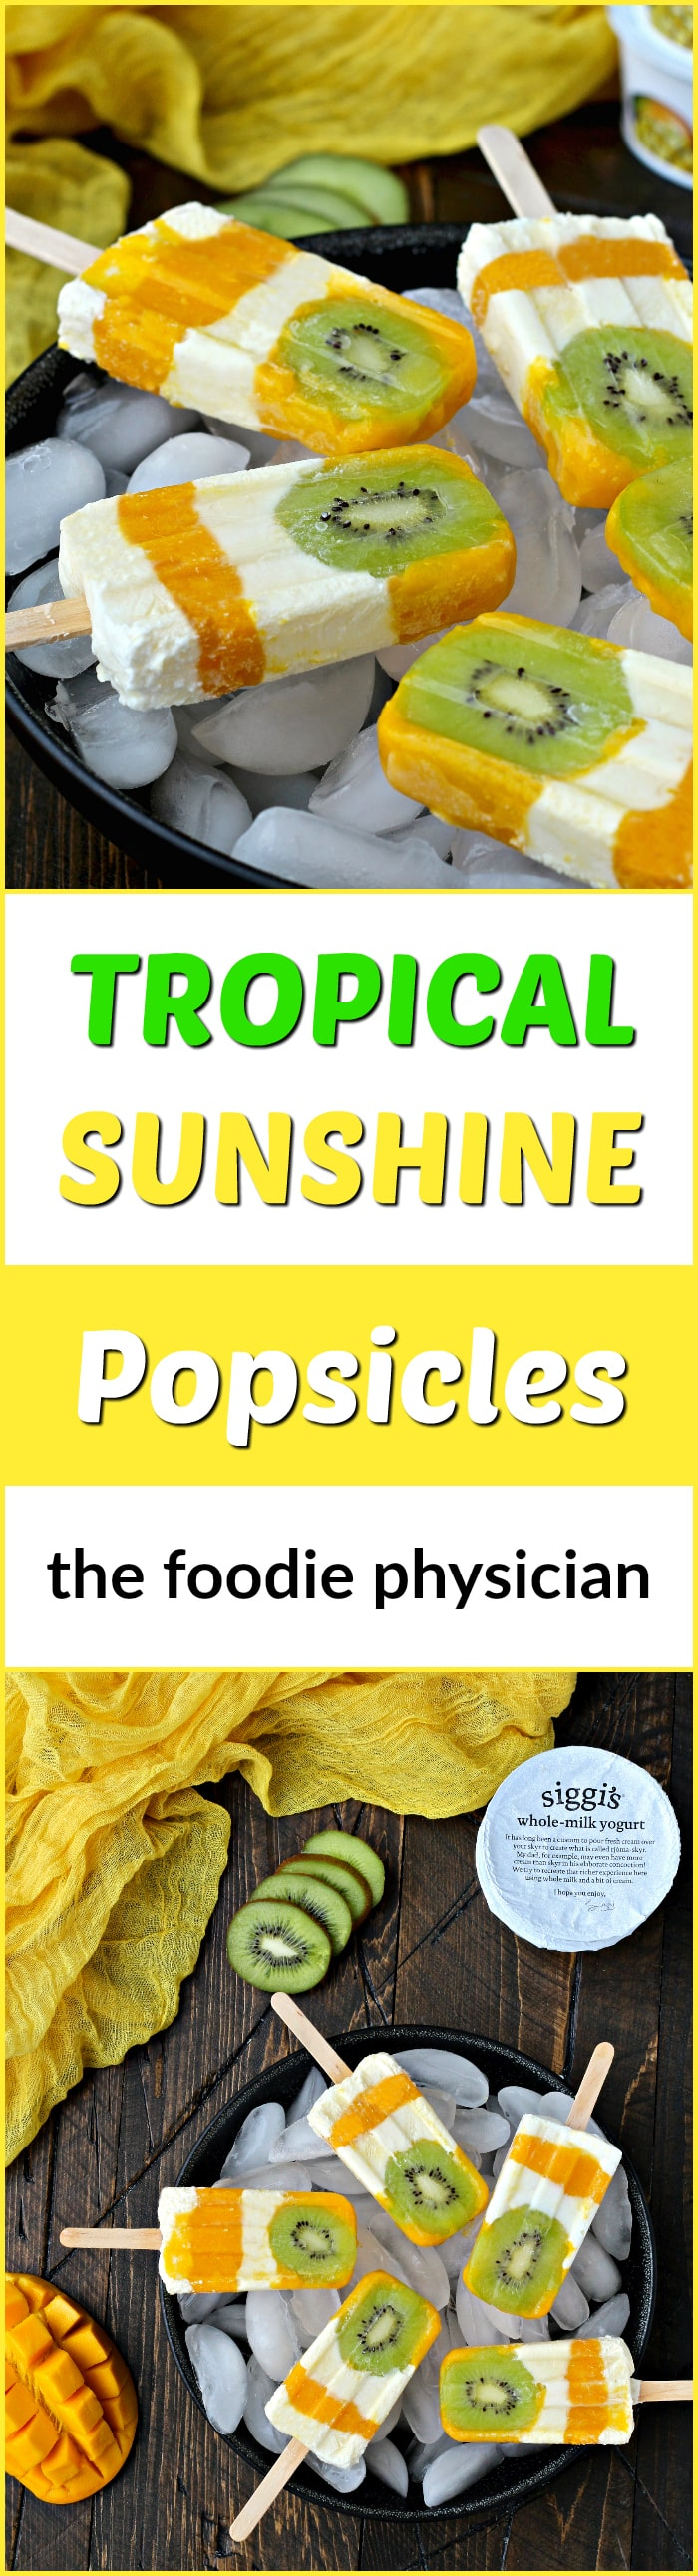 Healthy Eating Habits & Tropical Sunshine Popsicles | @thefoodiephysician